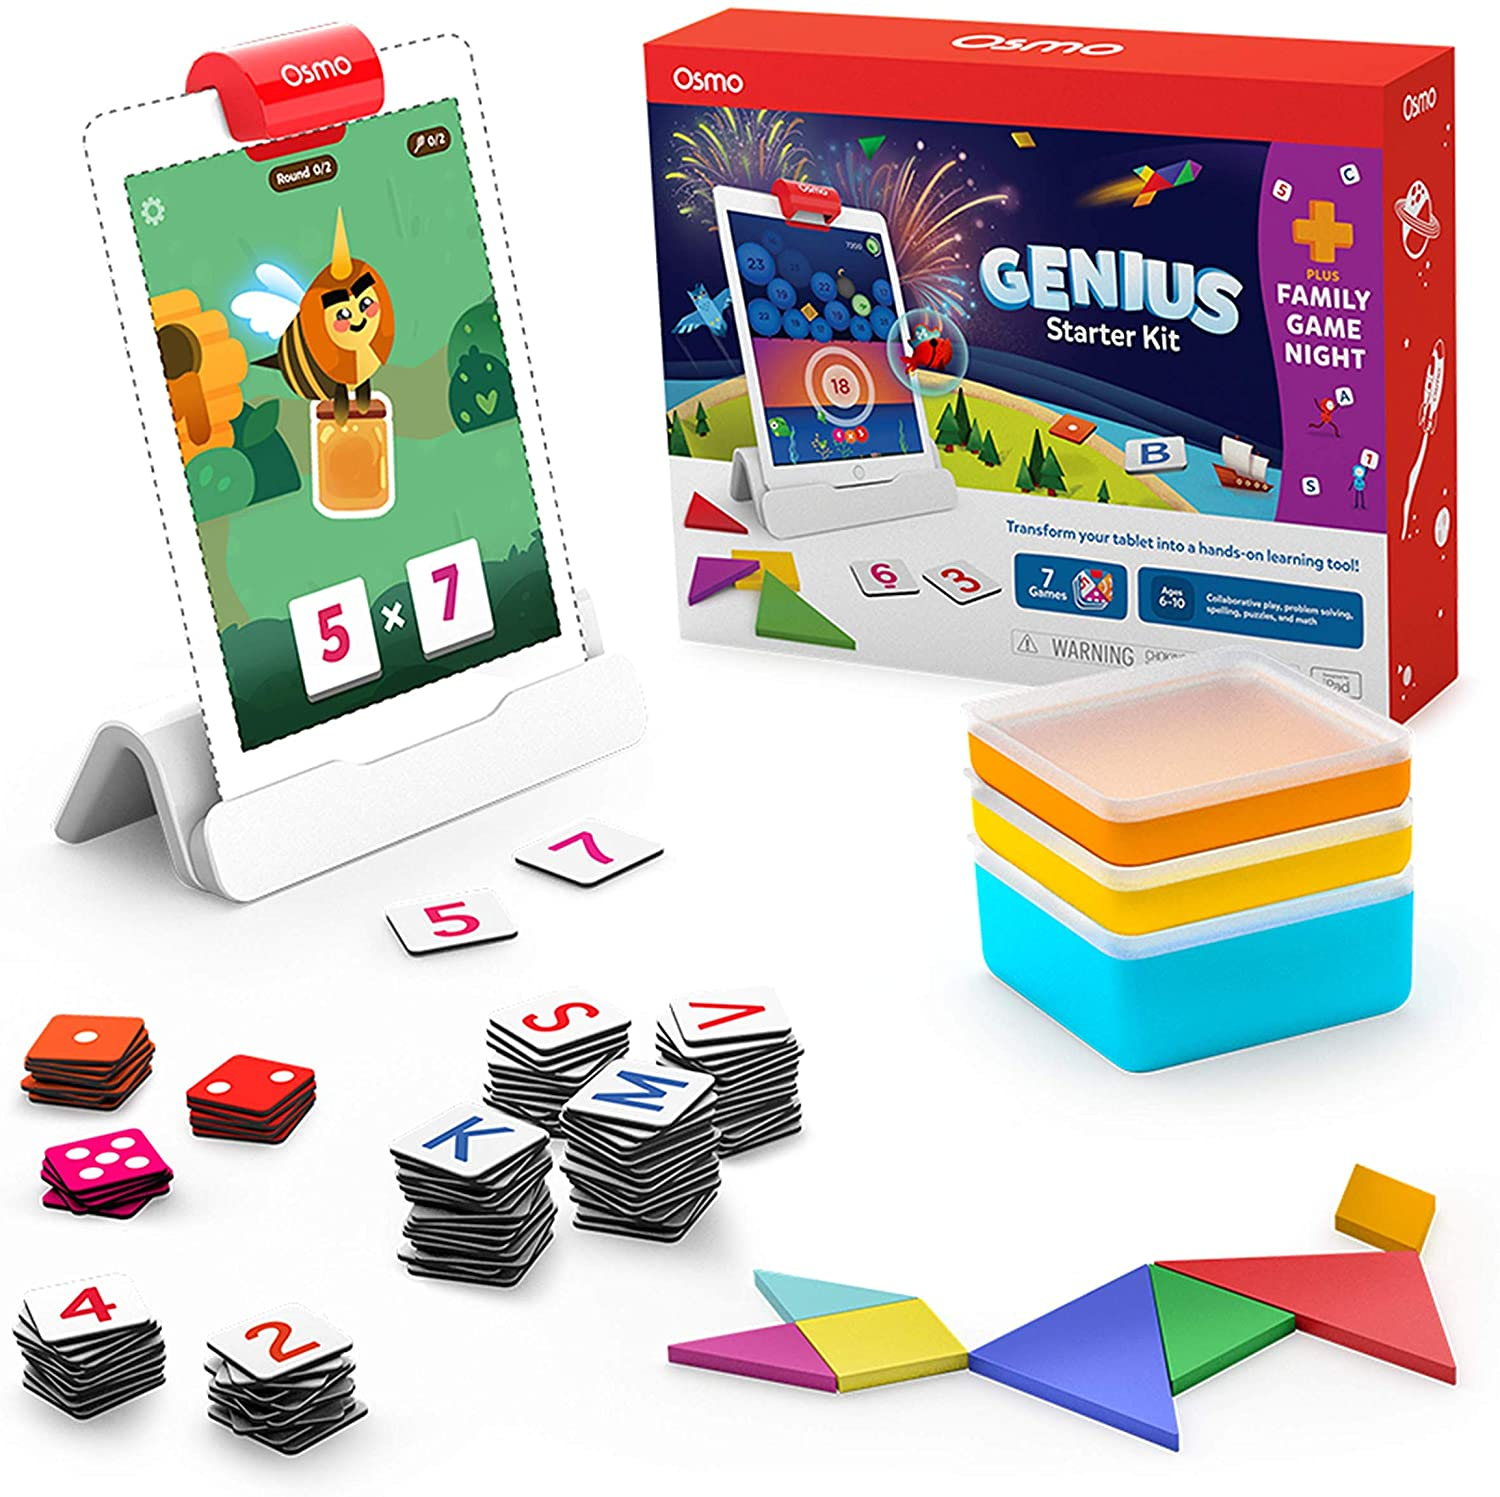 Osmo - Genius Starter Kit for iPad + Family Game Night - 7 Hands-On Learning Games for Spelling, Math & More - Ages 6-10 iPad Base Included - Amazon Exclusive